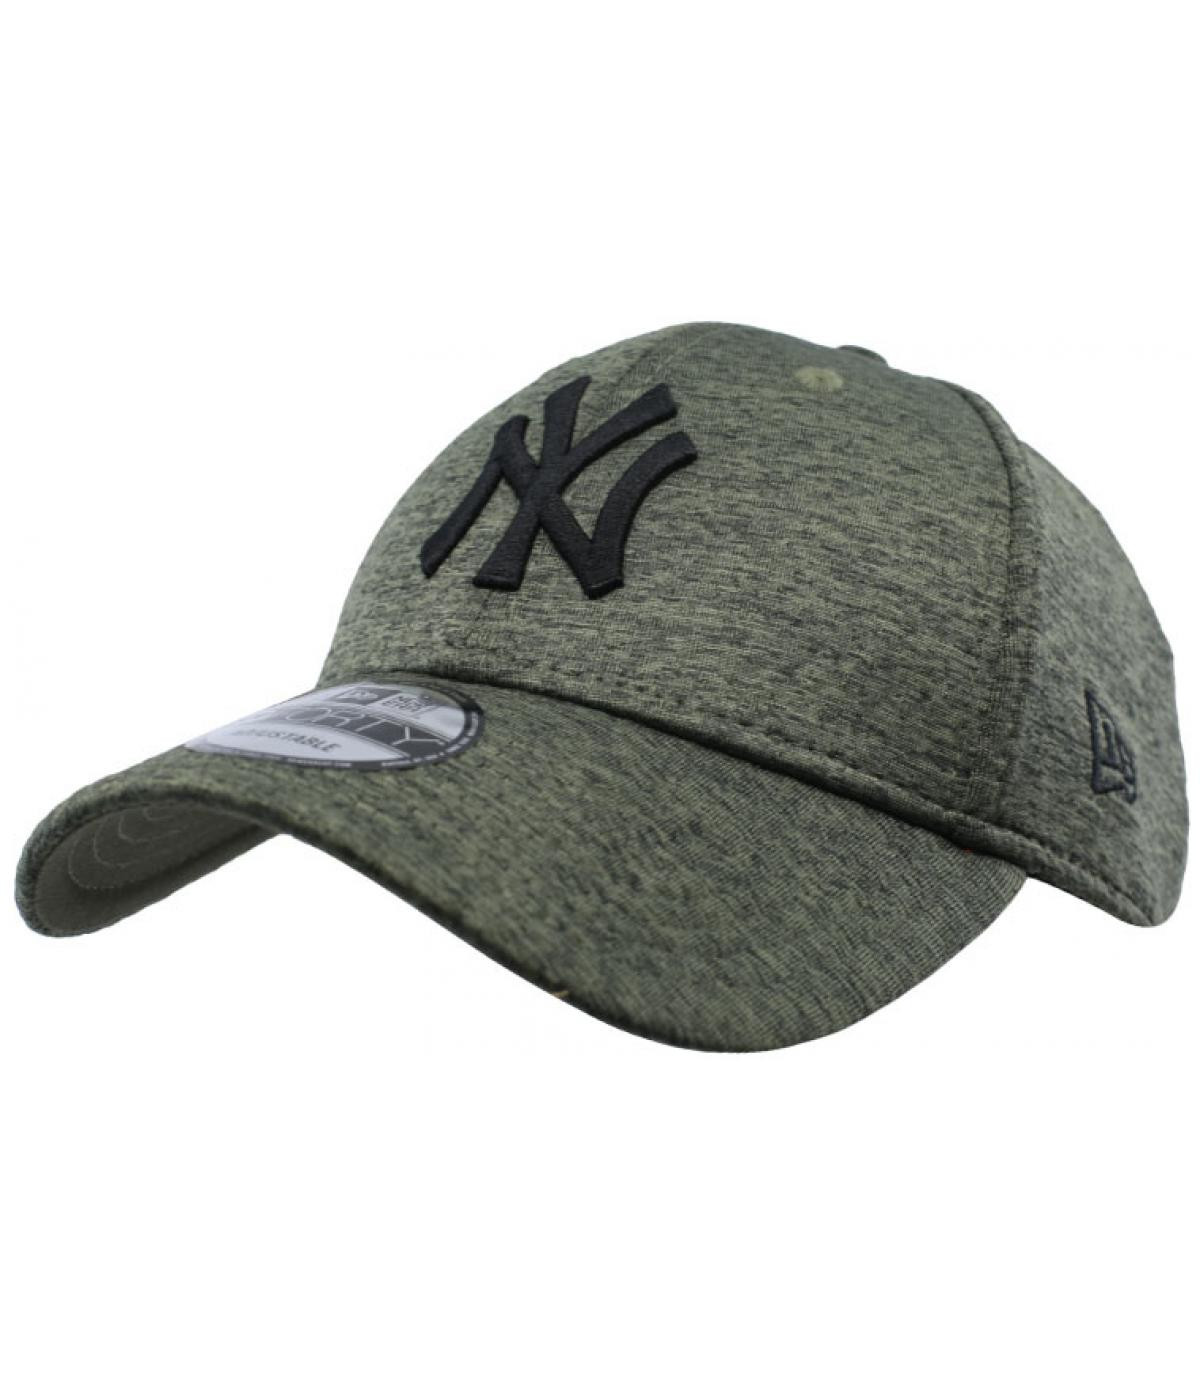 Details Cap NY Dryswitch Jersey 9Forty olive black - Abbildung 2